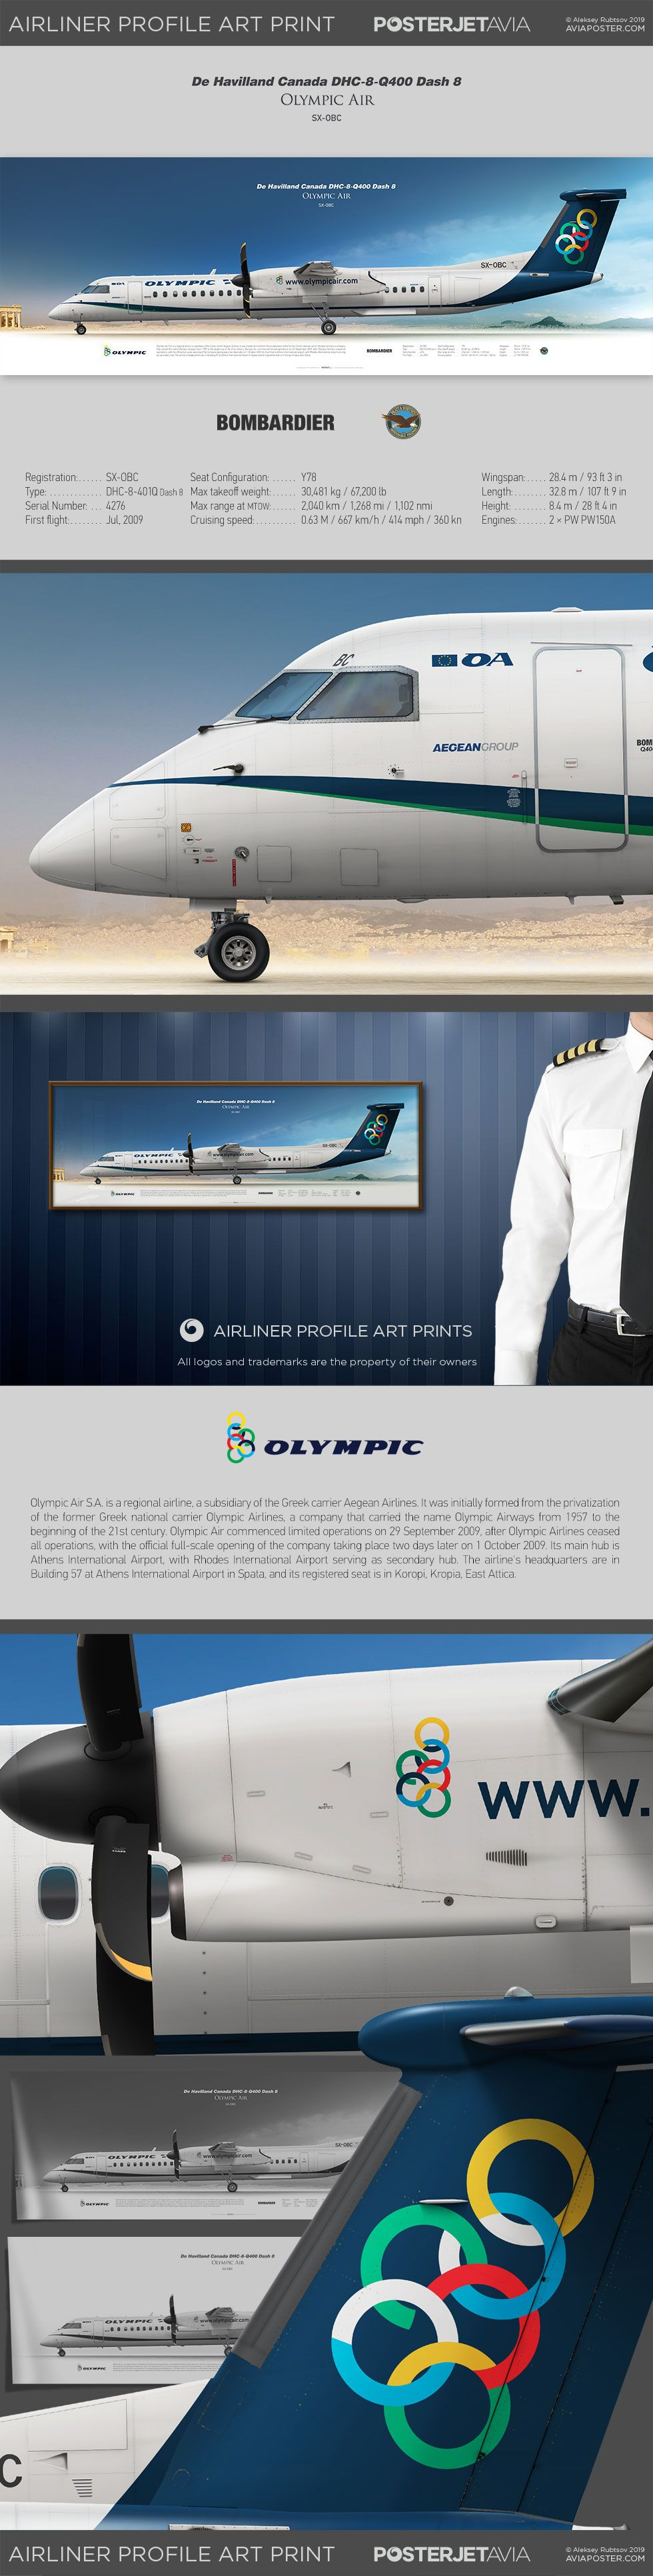 De Havilland Canada DHC-8-Q400 Dash 8 Olympic Air SX-OBC | Airliner Profile Art Prints | #posterjetavia #aviation #aviationlovers #airplanes #planes #avgeek #airlineposter #pilotlife #pilots #instaplane #worldofaviation #instaaviation #profileprints #civilaviation #olympicair #athens #Q400 #dhc8